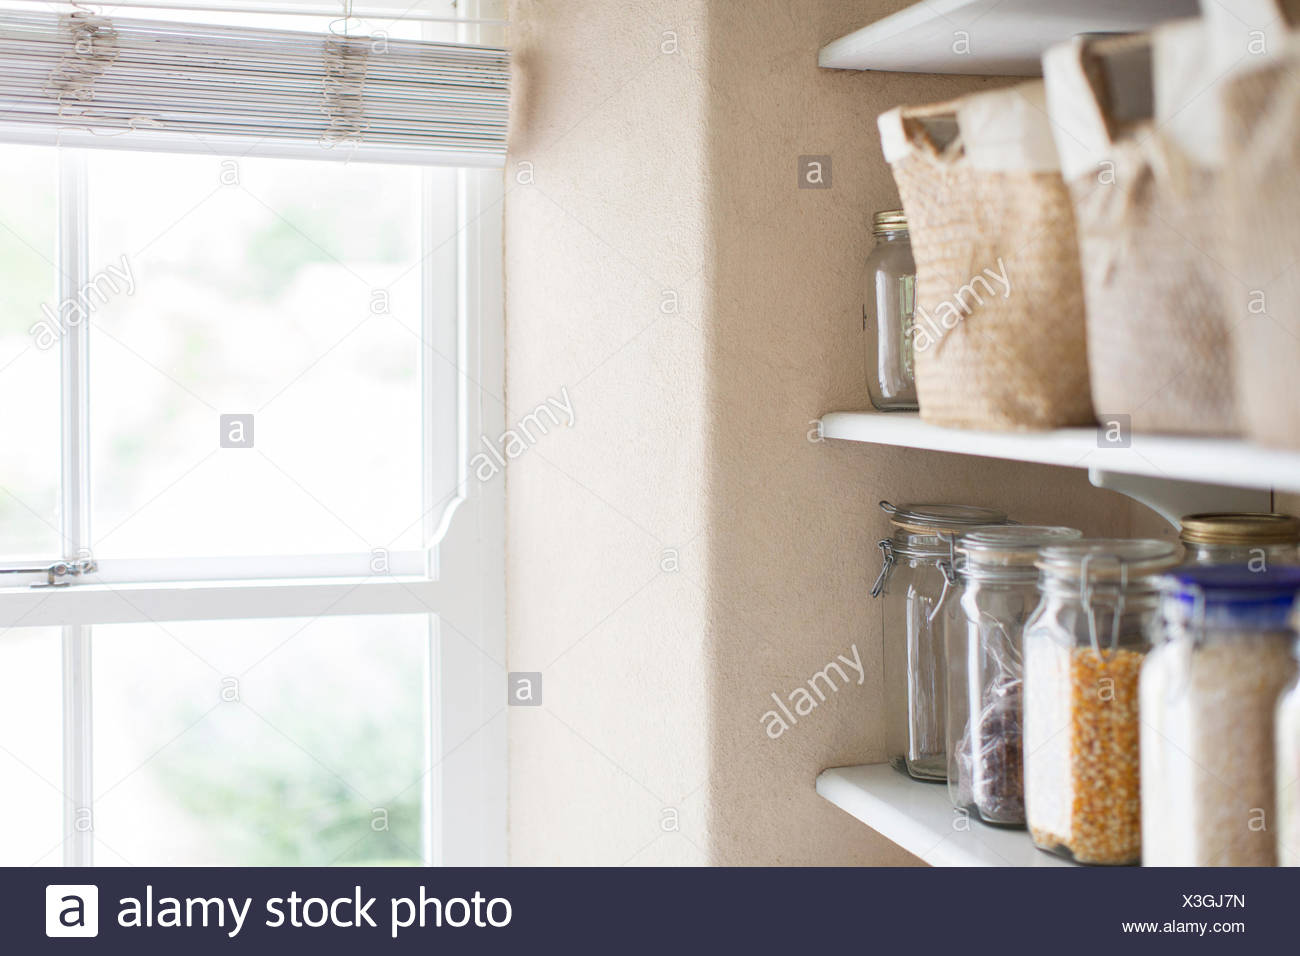 Dry goods and window of pantry Stock Photo